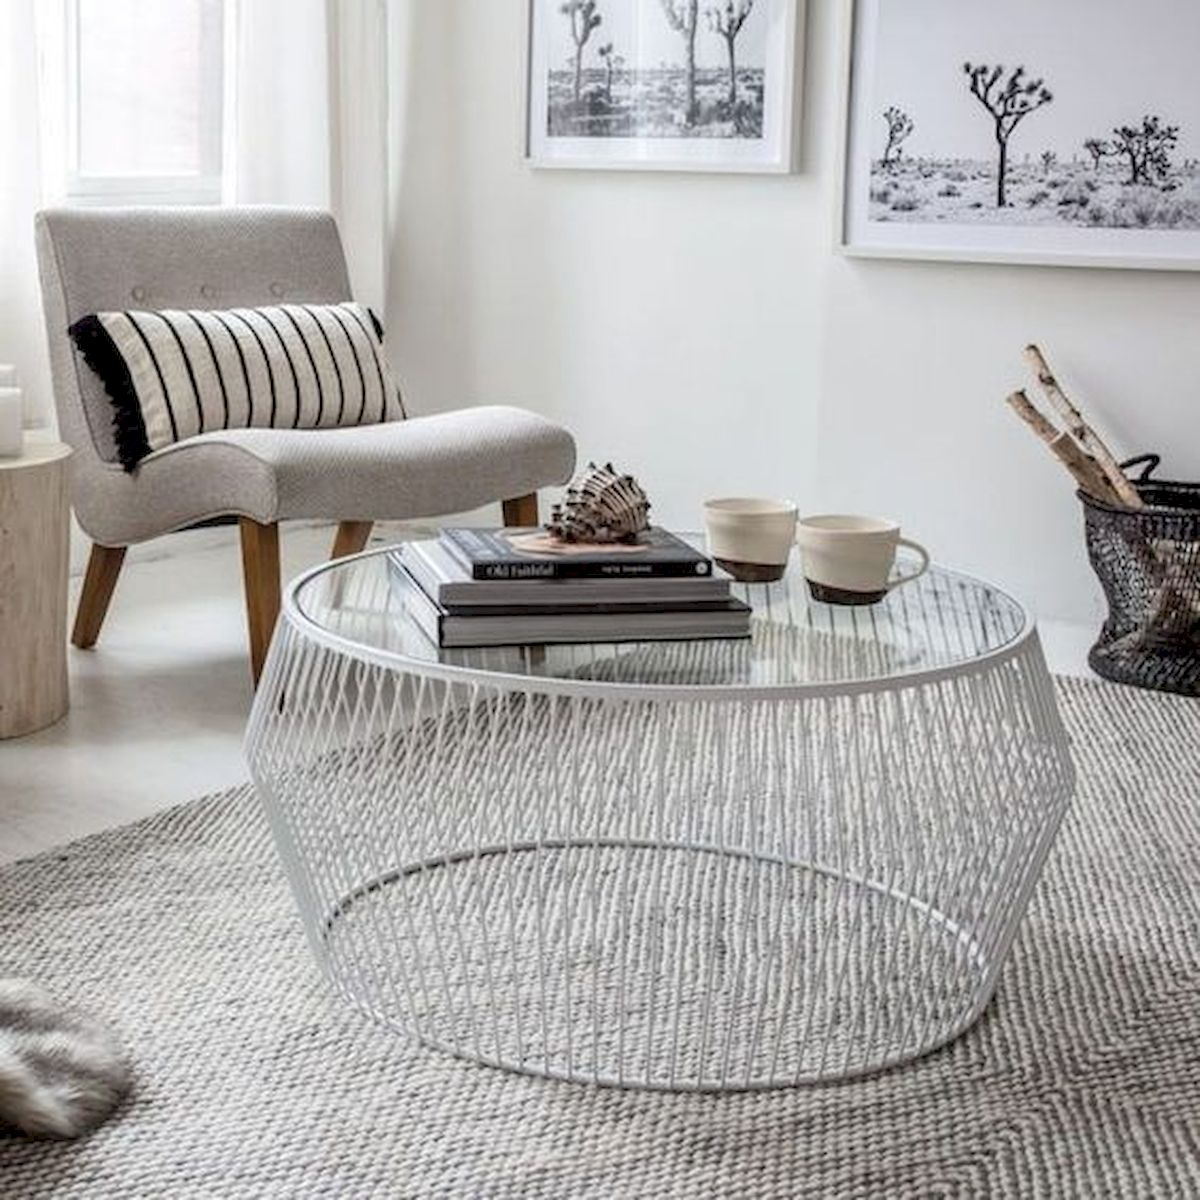 40 Awesome Modern Glass Coffee Table Design Ideas For Your Living Room (26)